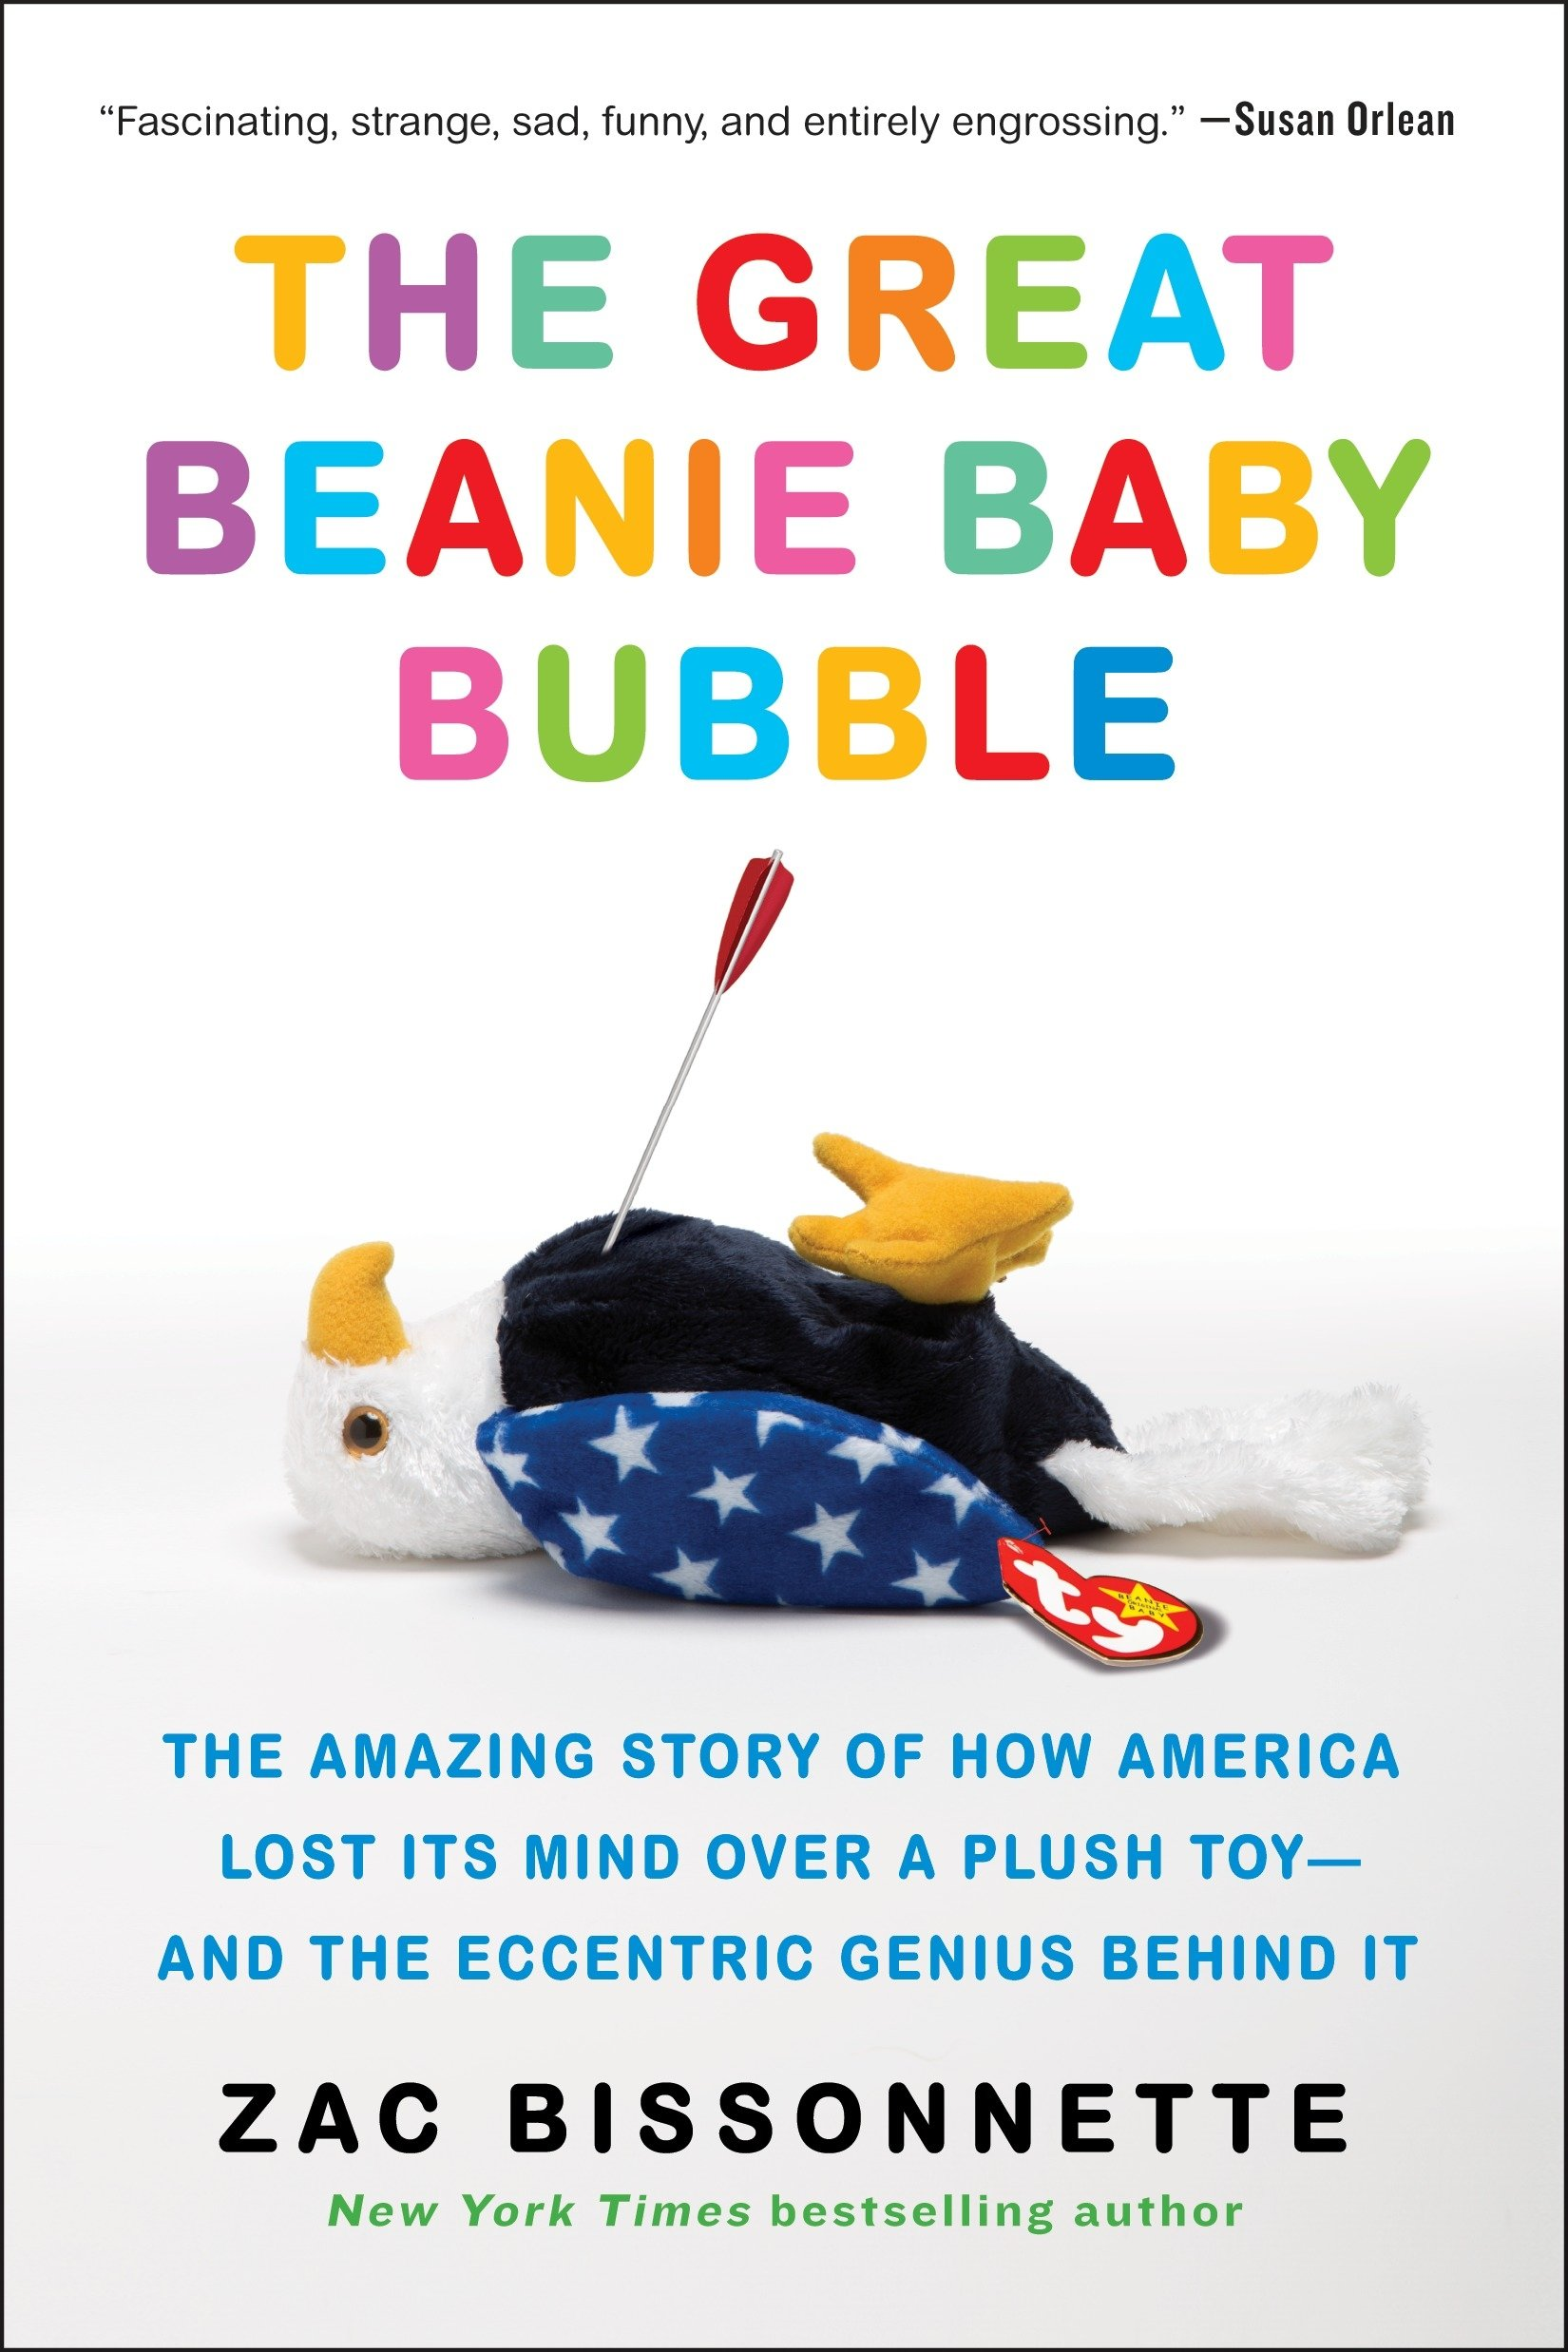 the-great-beanie-baby-bubble-the-amazing-story-of-how-america-lost-its-mind-over-a-plush-toy-and-the-eccentric-genius-behind-it